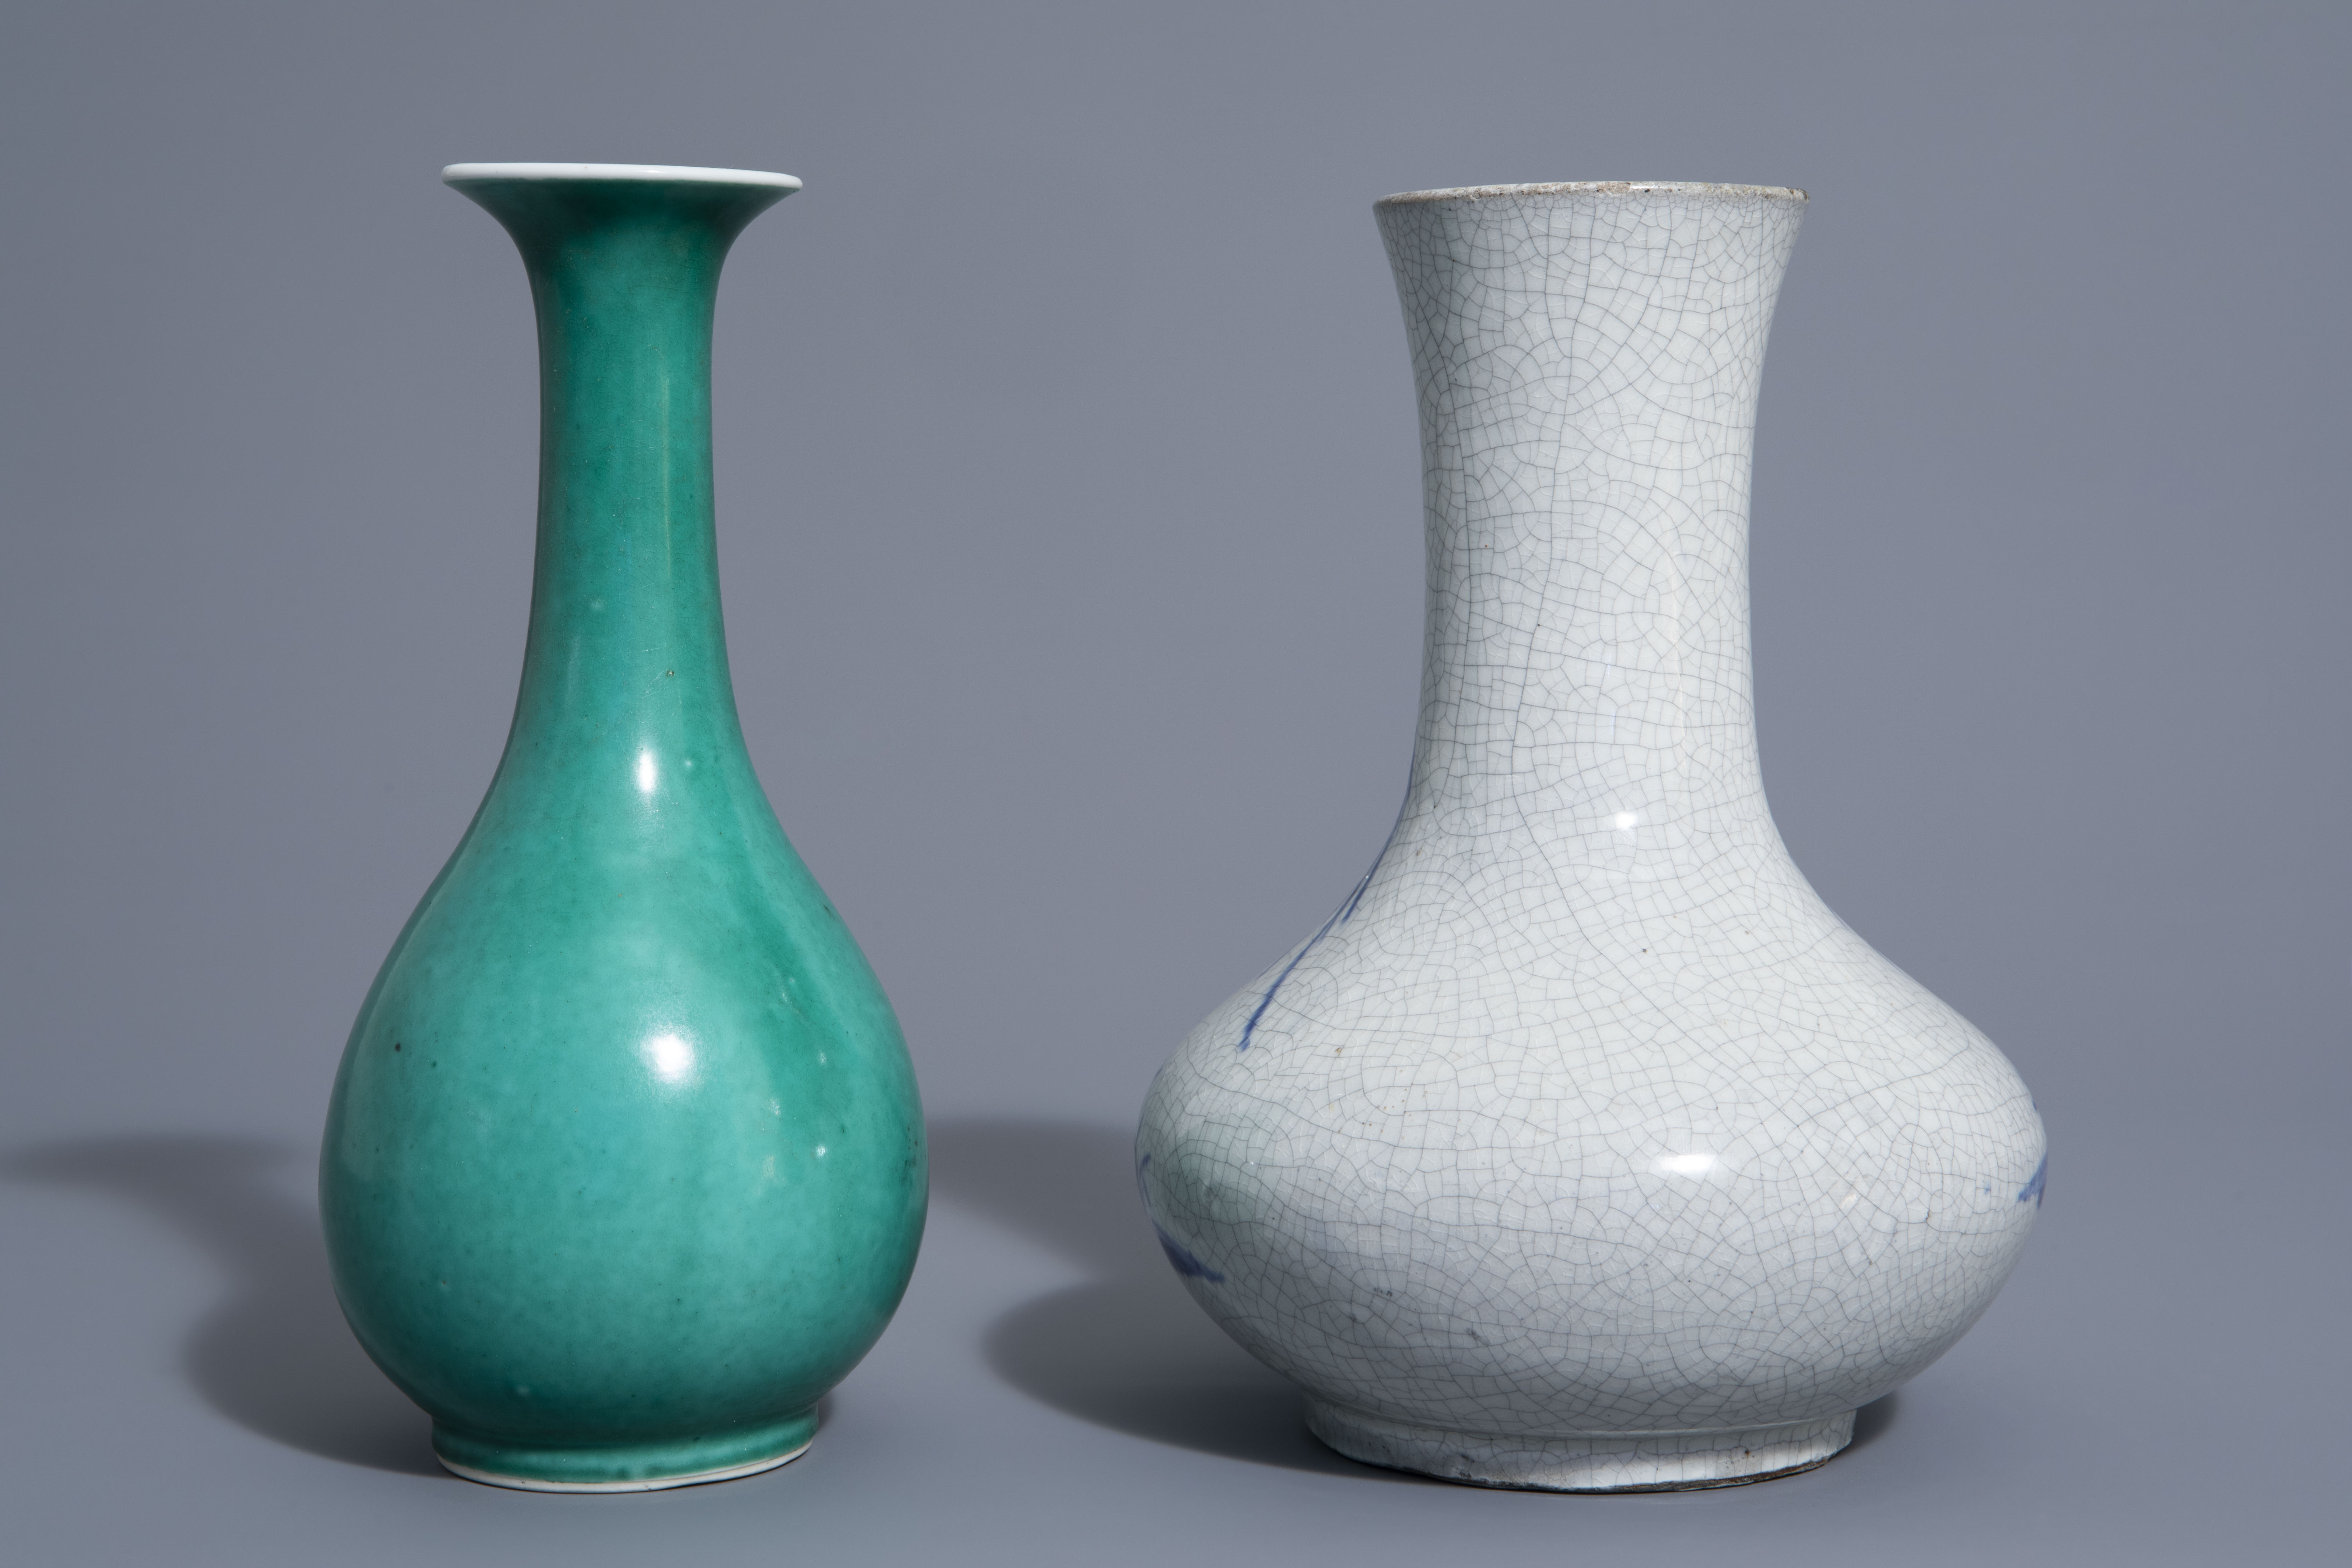 A Chinese blue & white crackle glazed vase, a monochrome green vase and a brushwasher, 19th/20th C. - Image 4 of 13